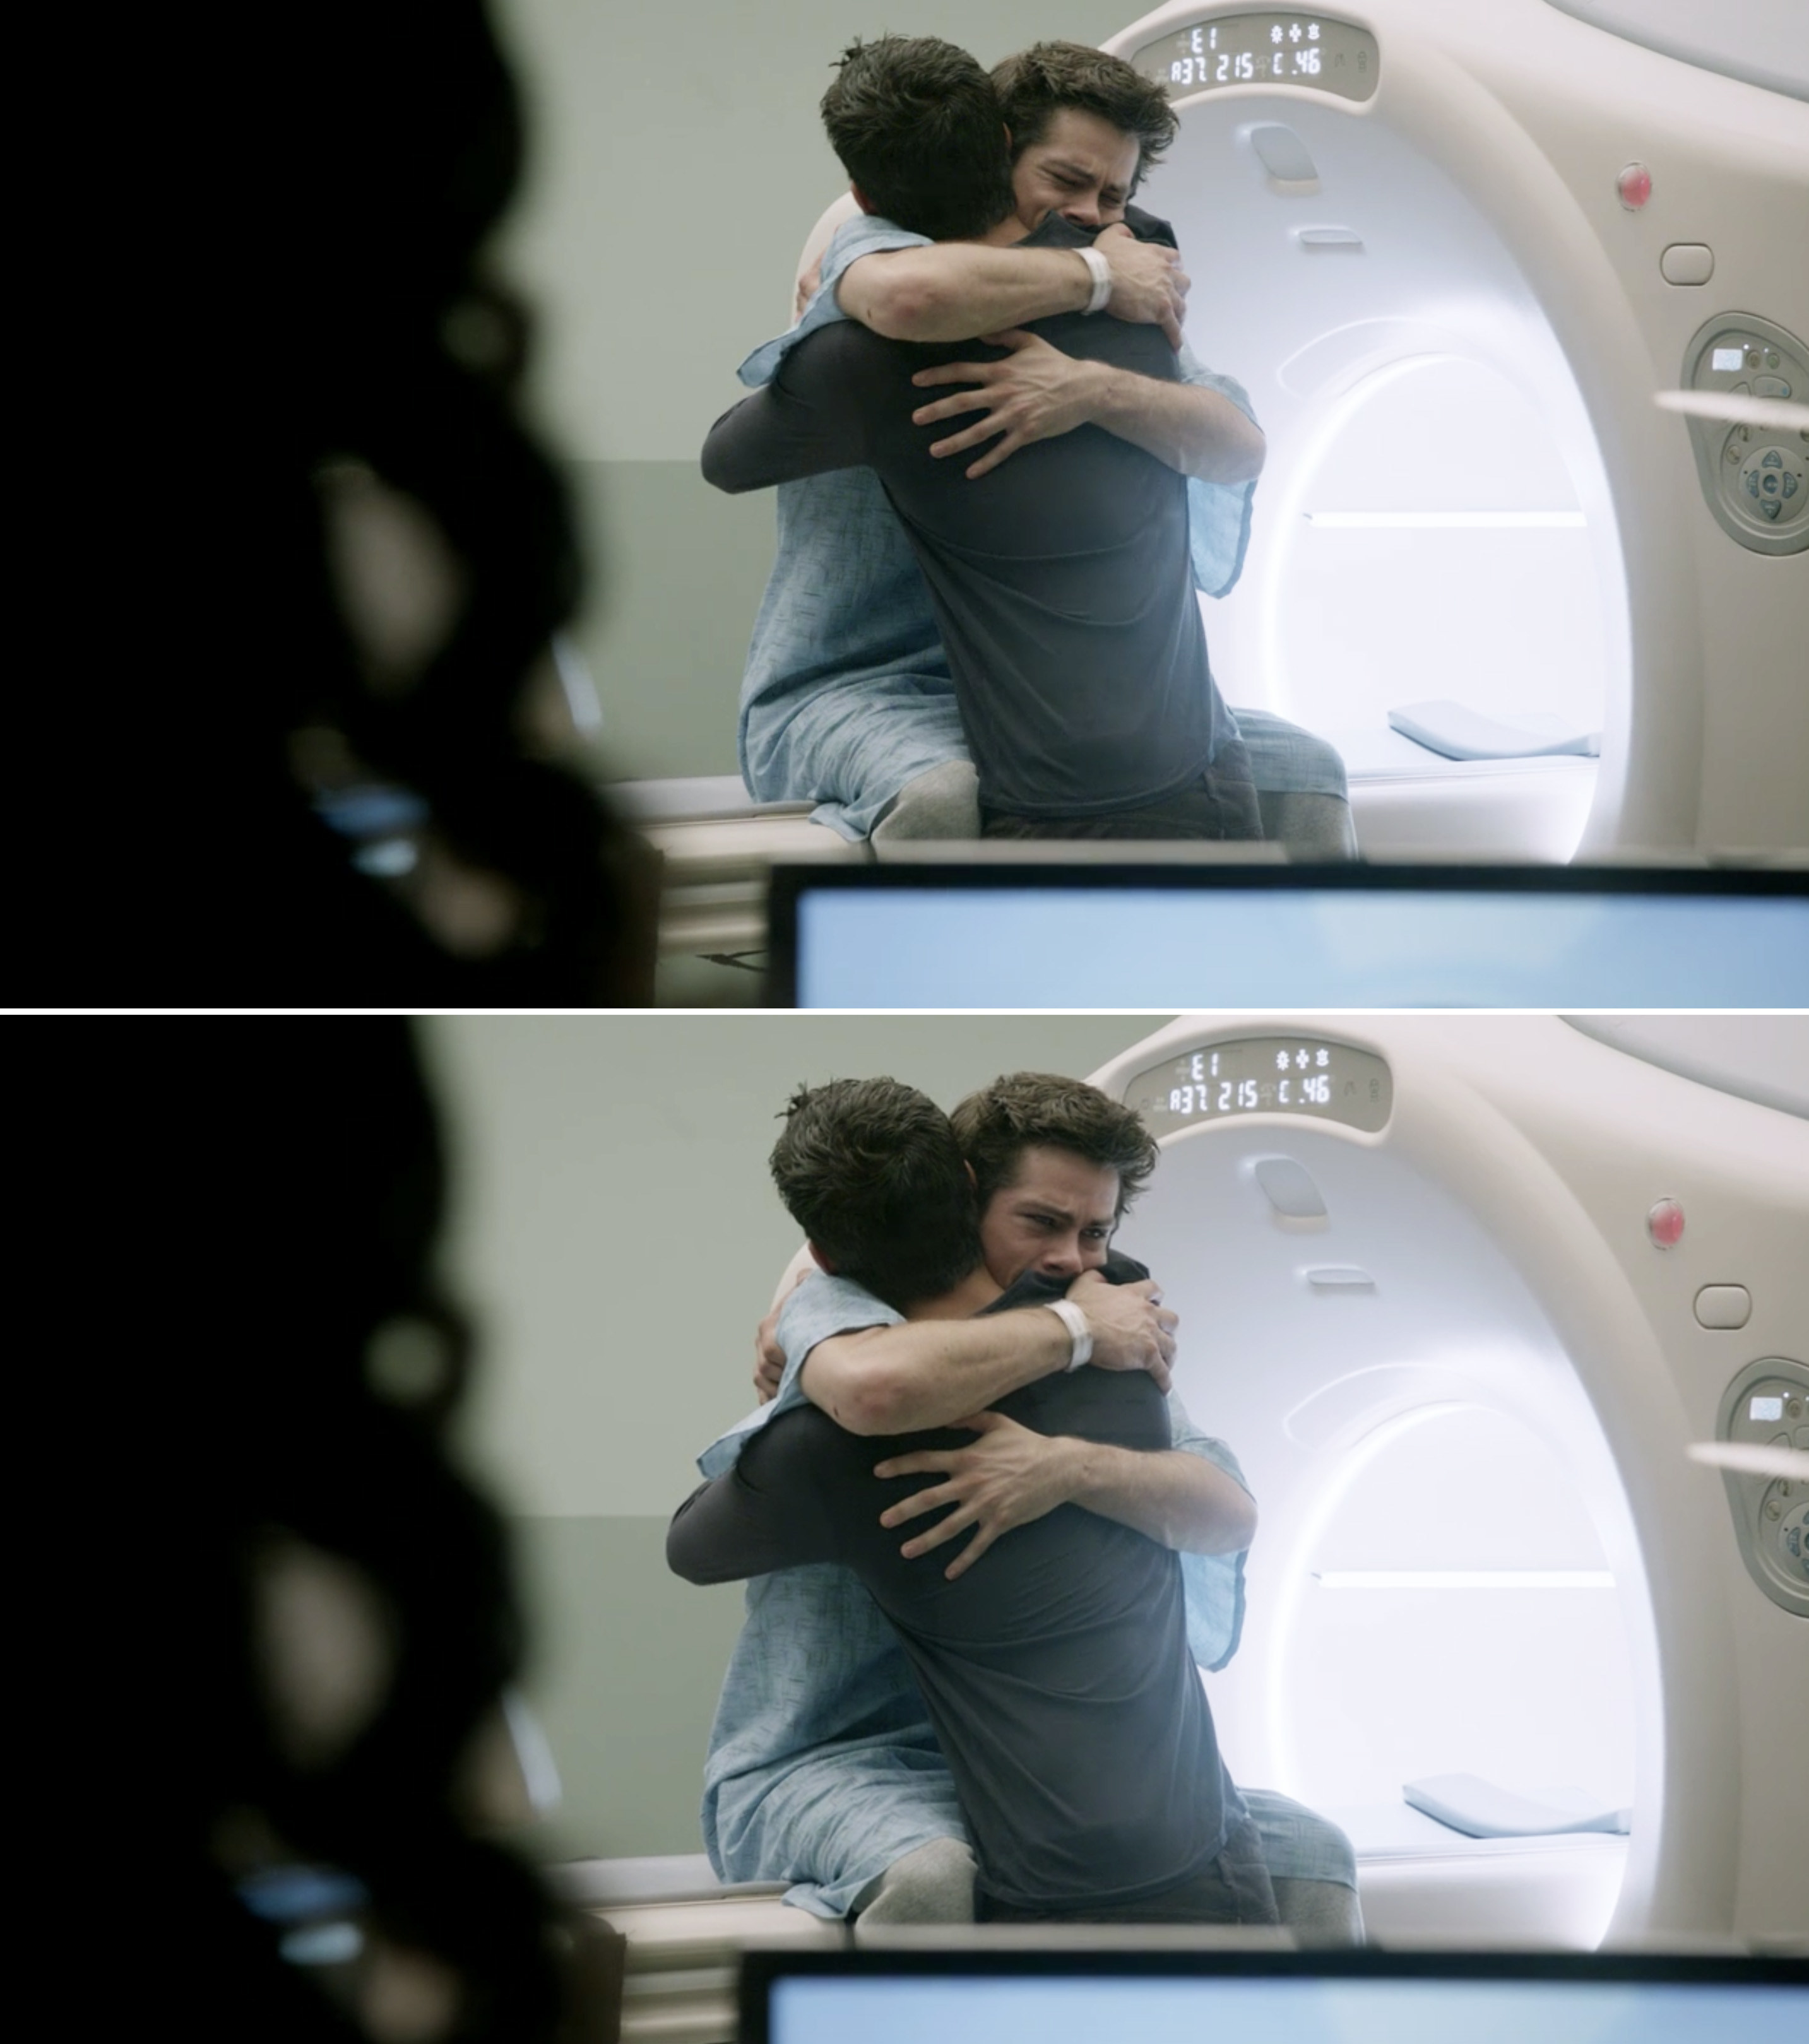 Stiles weeping and hugging Scott before his CT scan